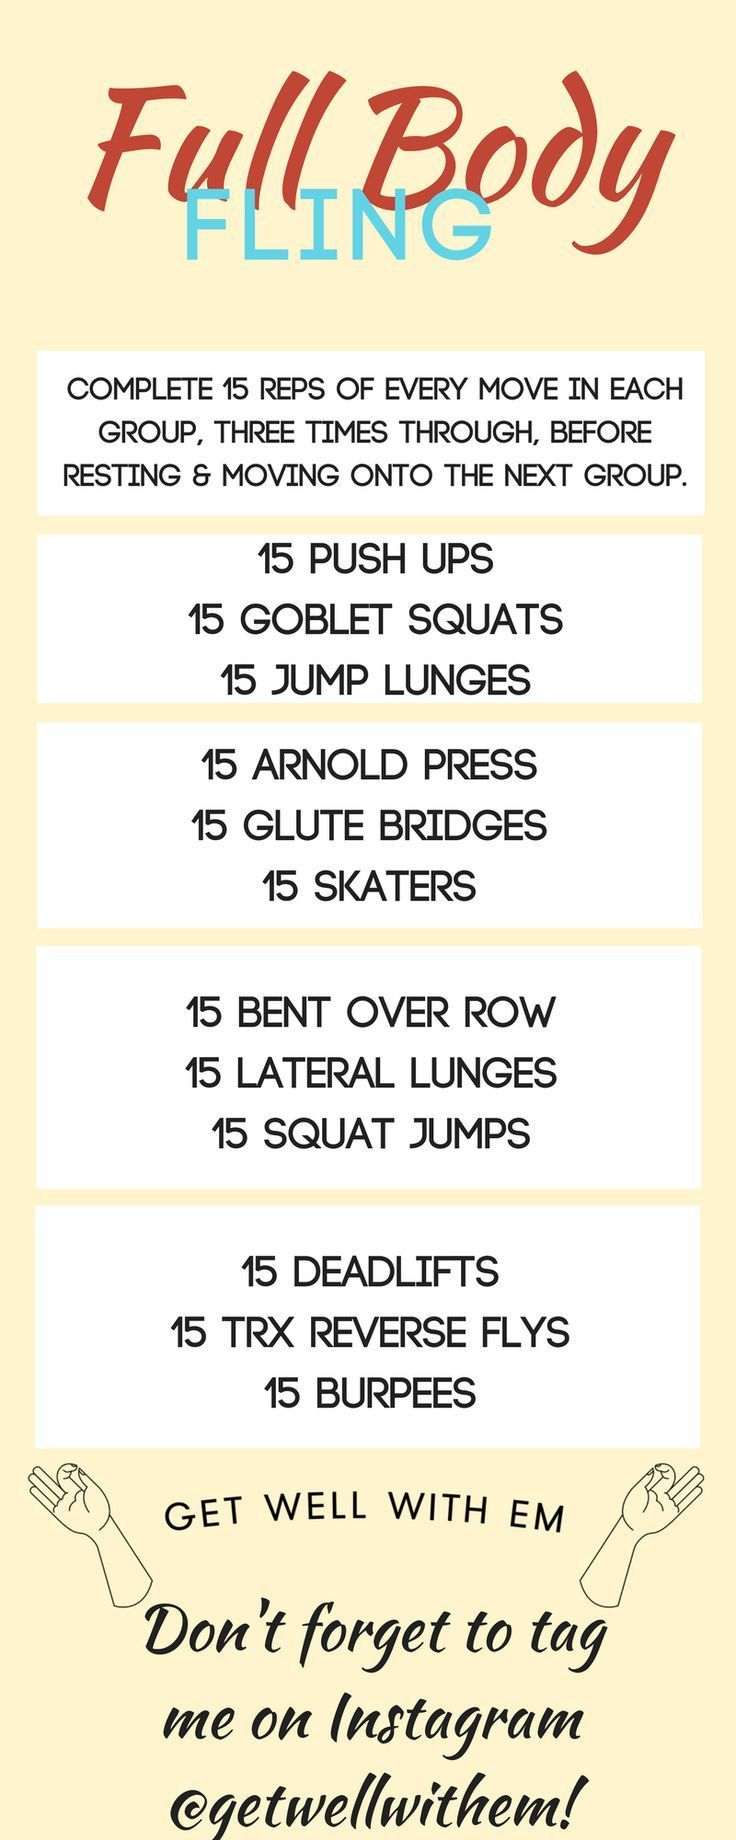 At Home Full-Body Dumbbell Workout  Weekly Workout Schedule - Dumbbell - Ideas of Dumbbell #Dumbbell -  An at home full-body dumbbell workout to leave you feeling strong from head to toe! Can be completed at home or in the gym all you need is a set of dumbbells! #loseweight #ketorecipes #weightlosstransformation #ketodiet #diet #dietplan #weightloss #dumbbellworkout